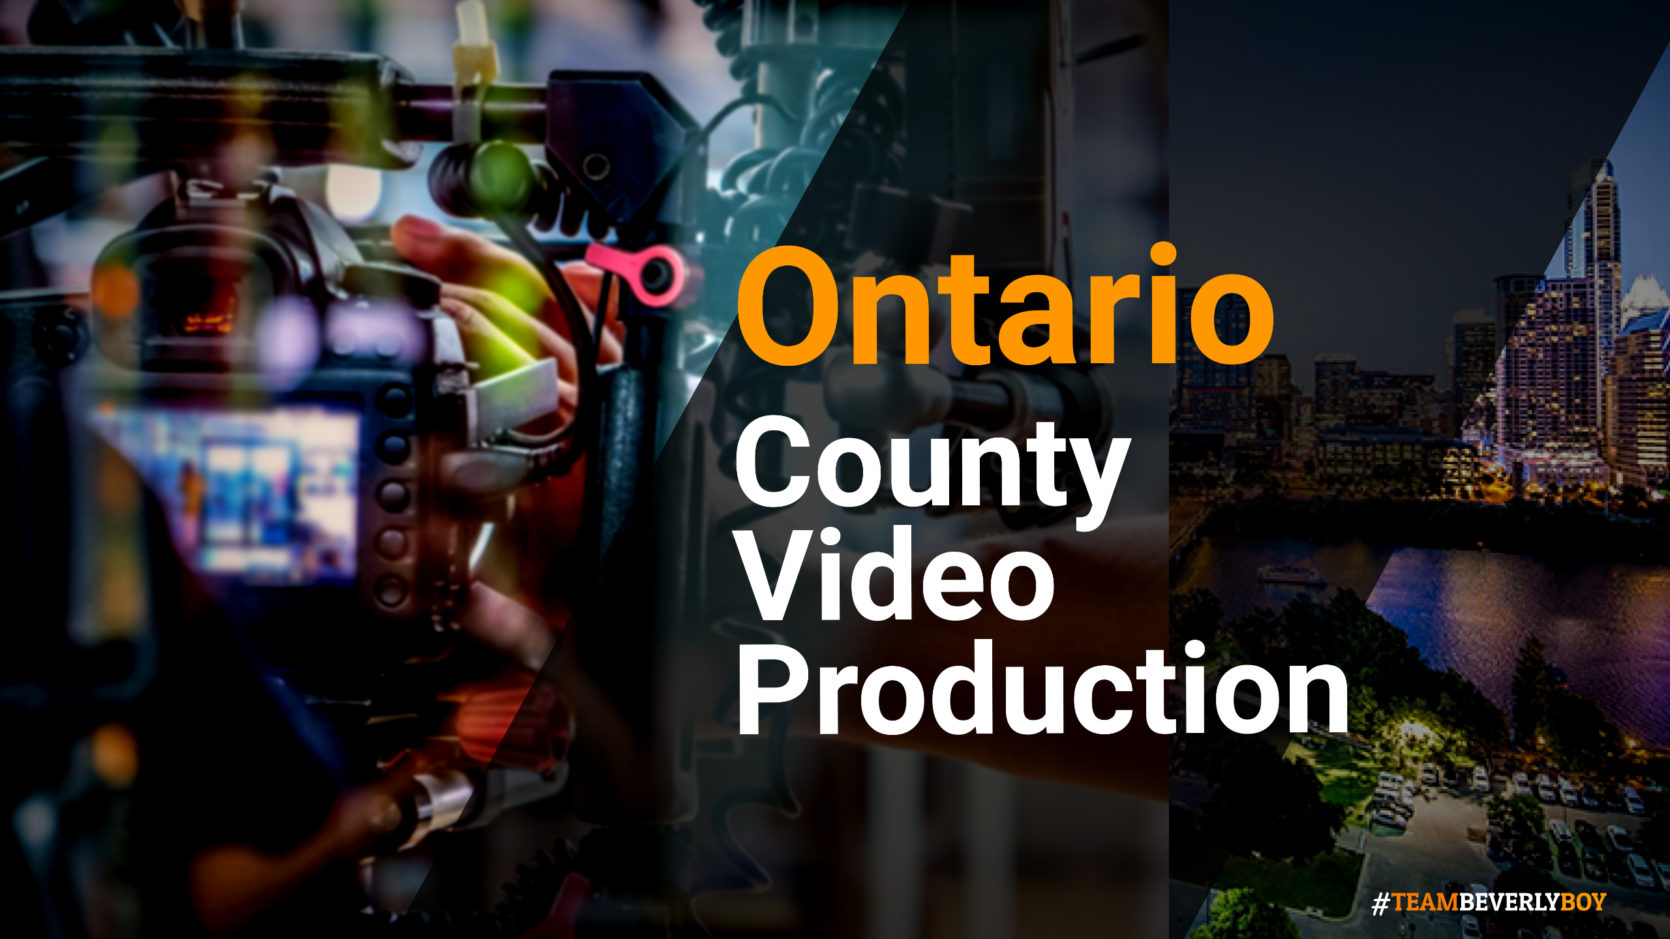 Ontario county video production